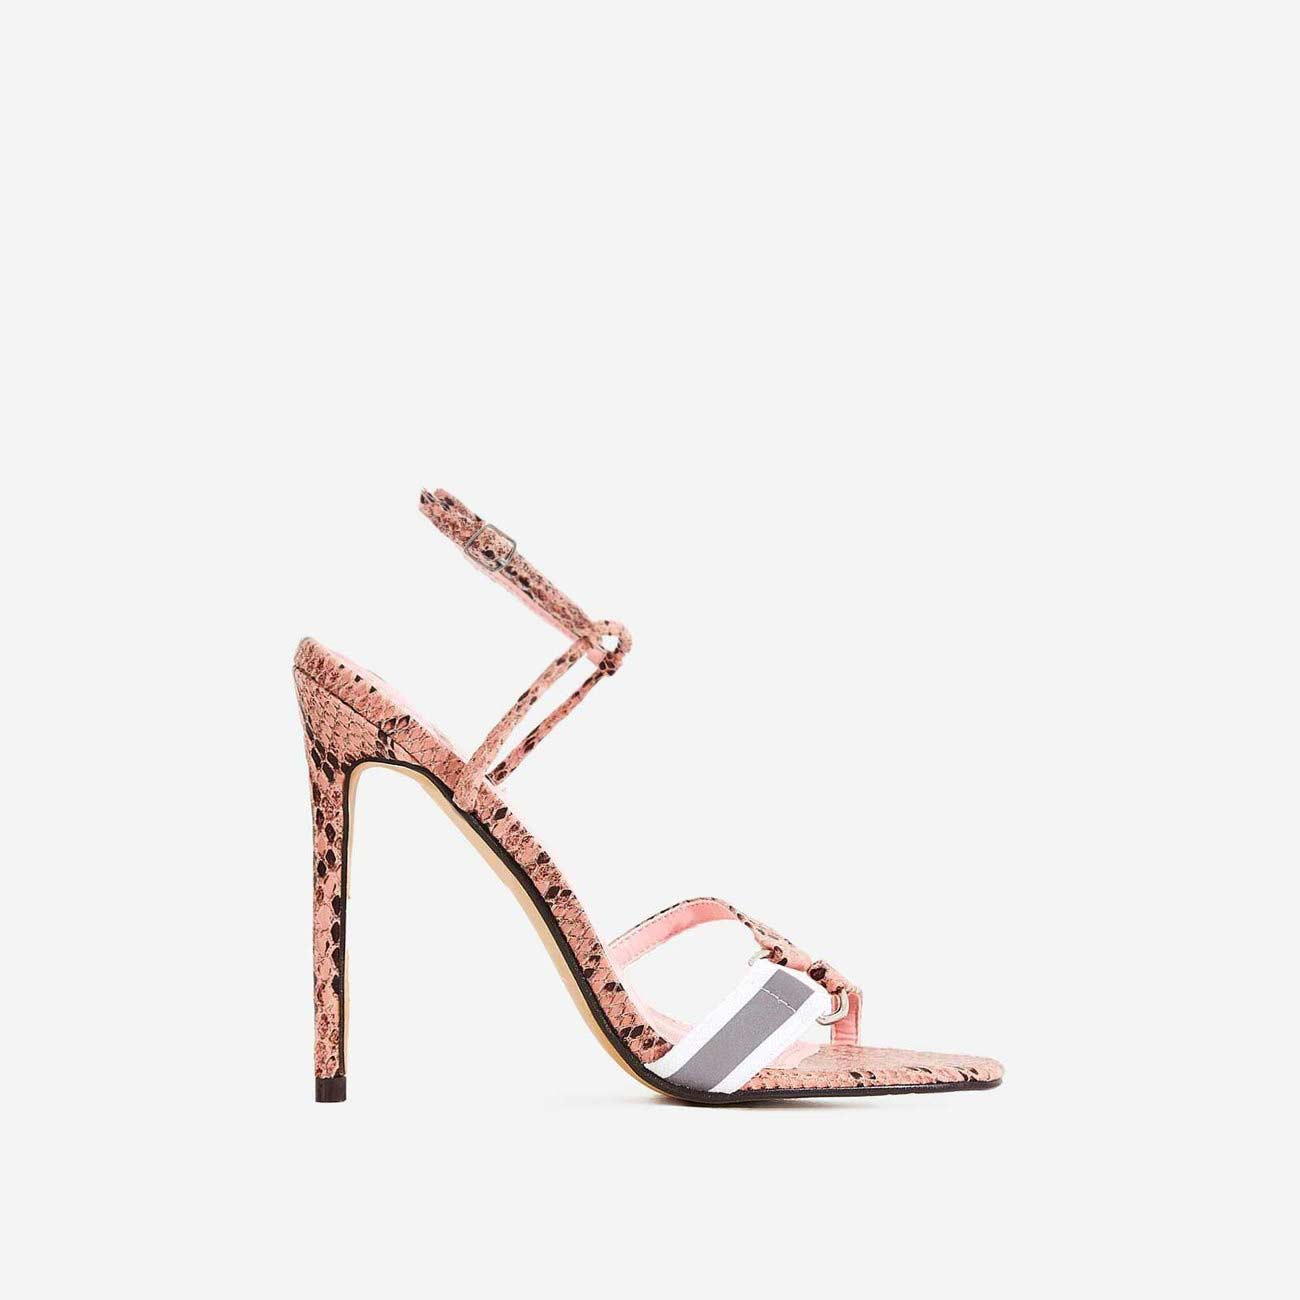 Tasmin Square Toe Barely There Heel In Pink Snake Print Faux Leather